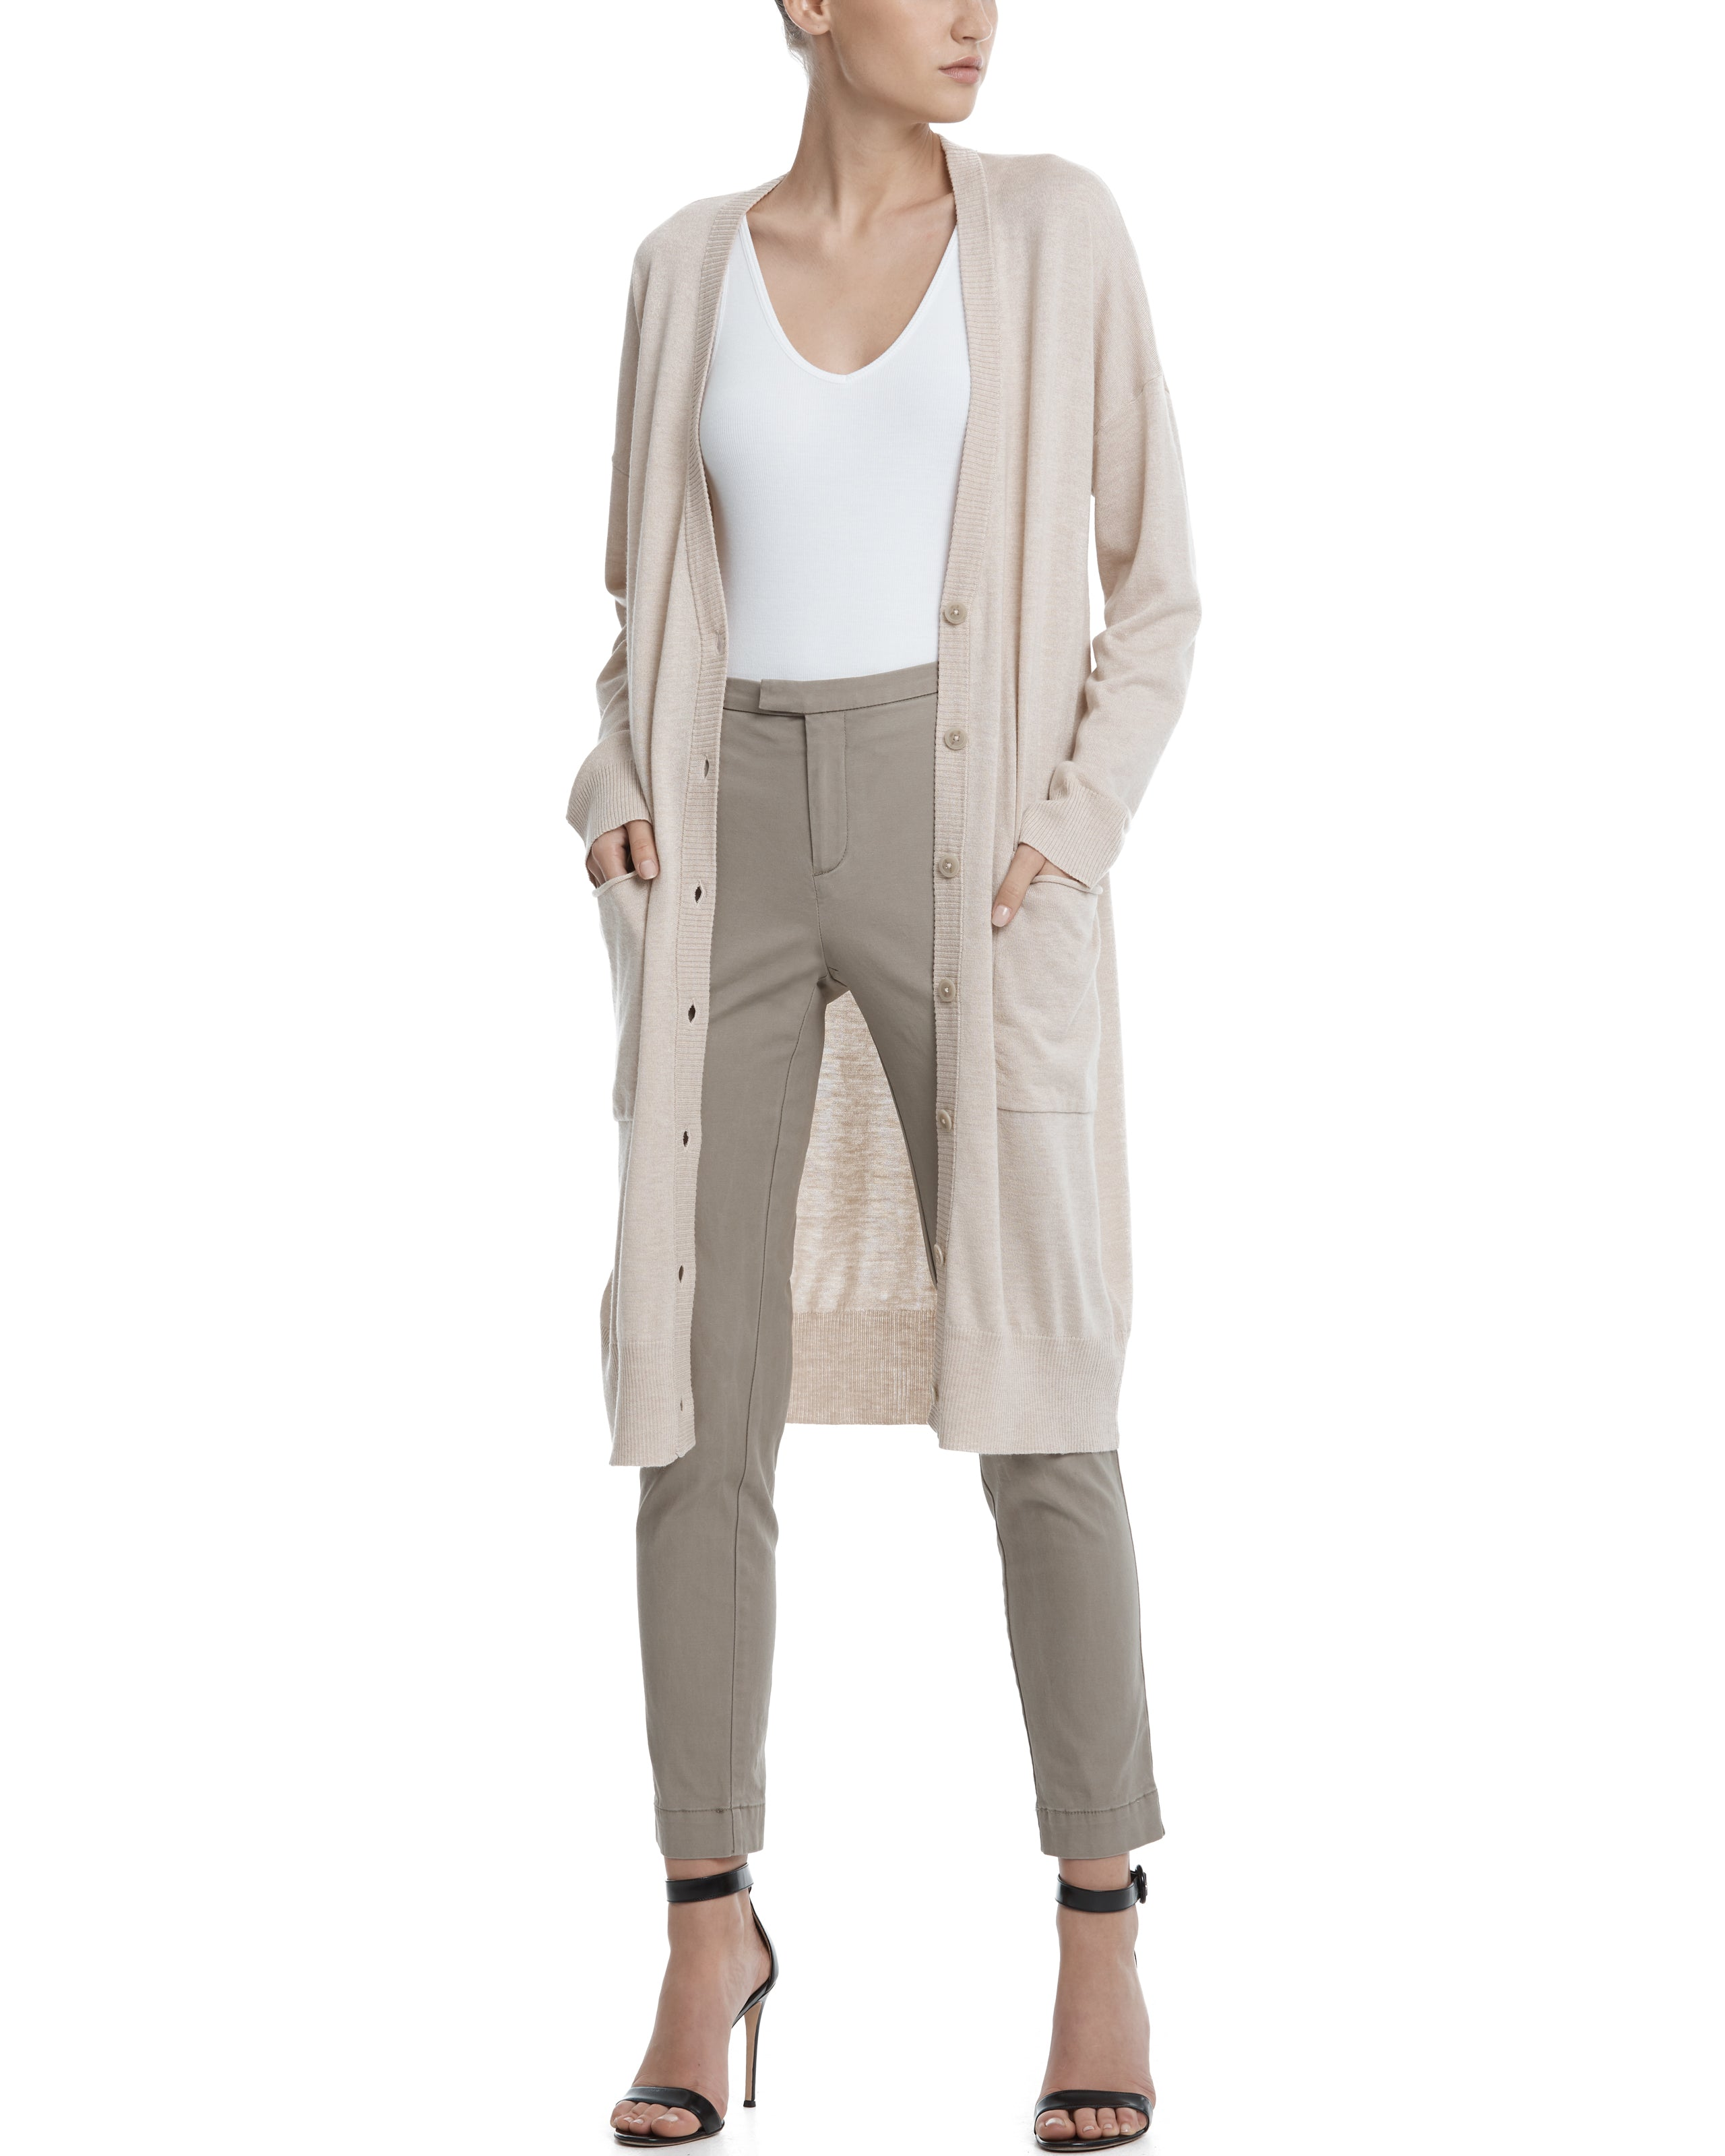 ATM Silk Cashmere Long Cardigan